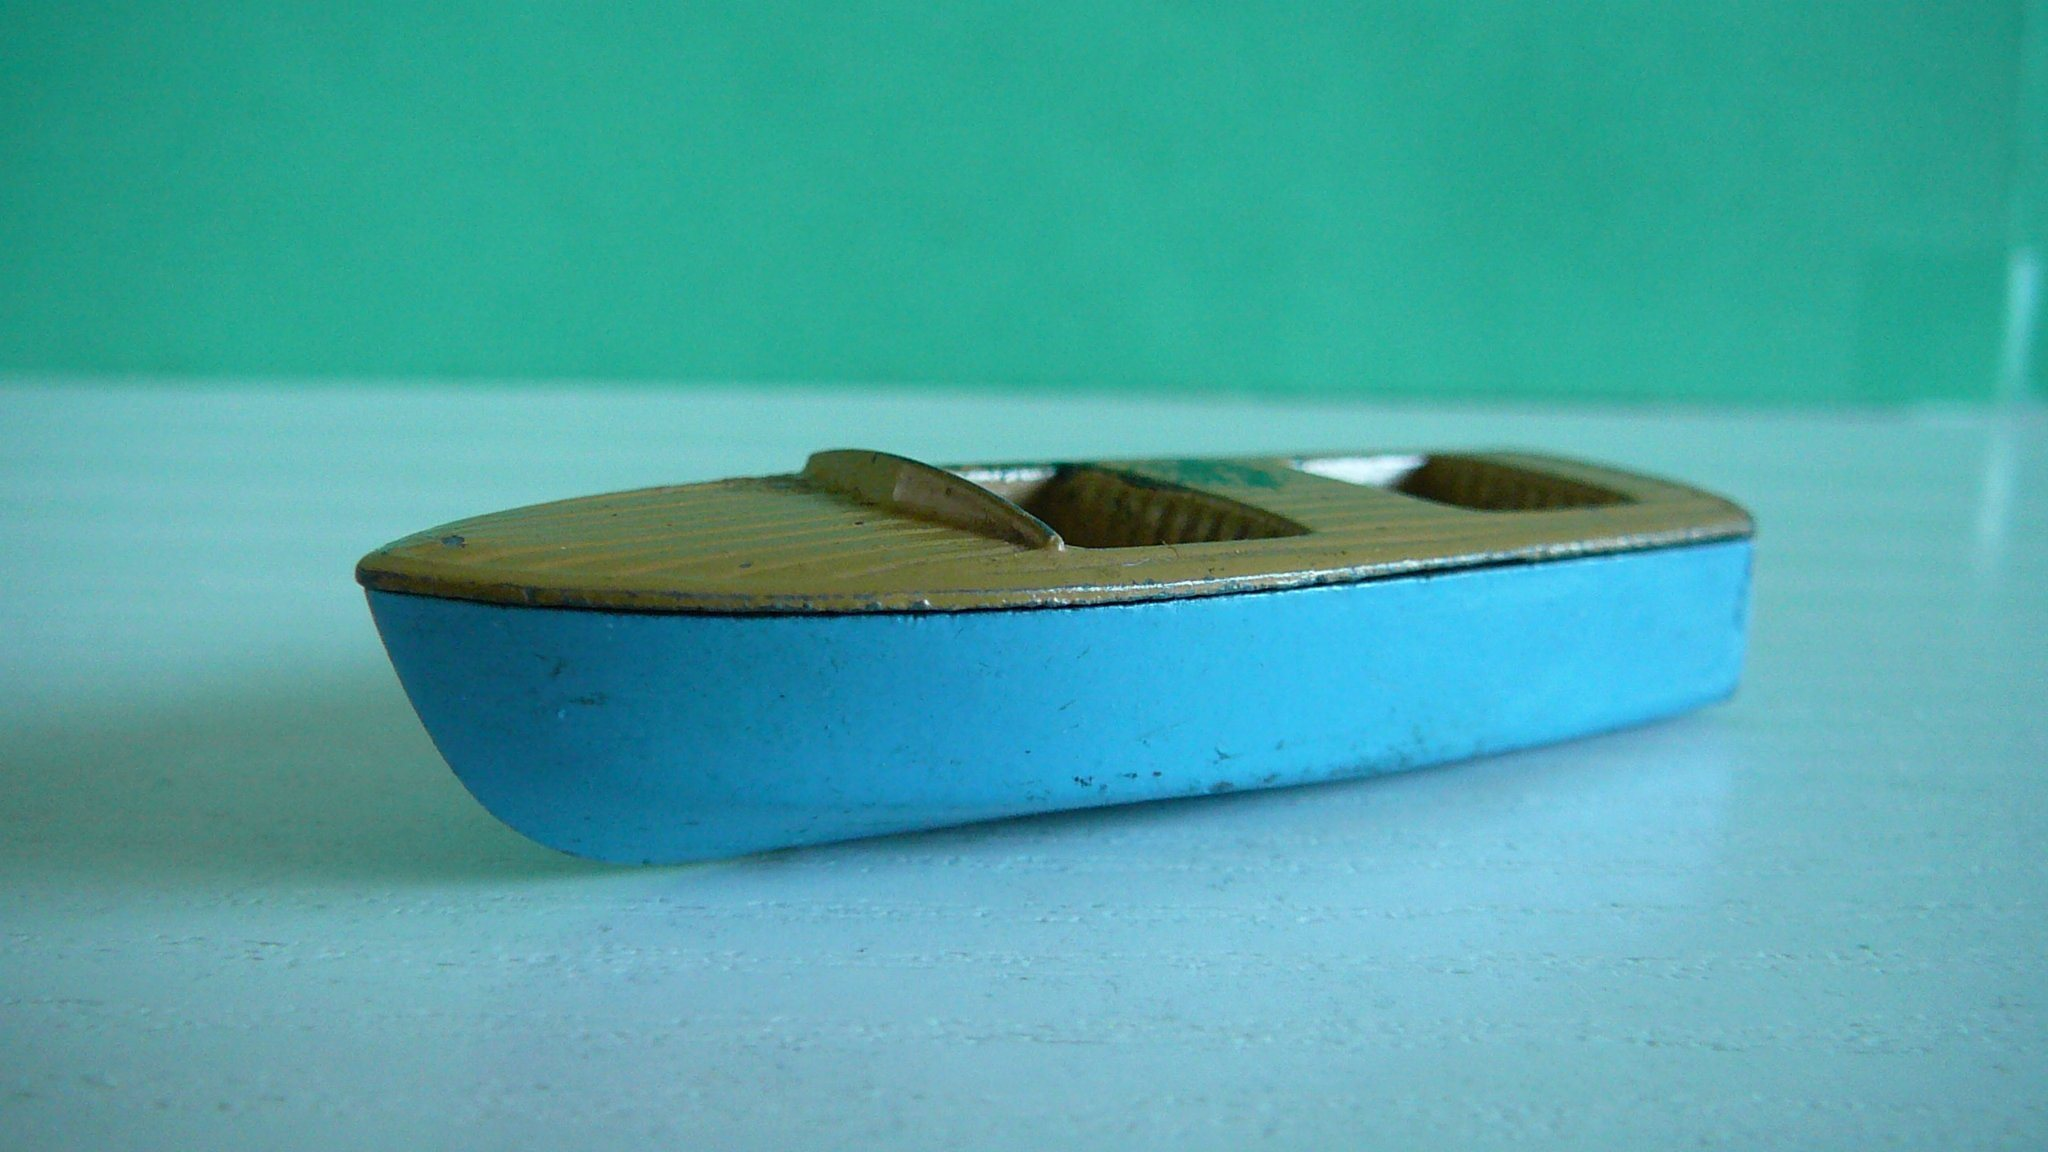 Meteor Sportsman Boat - Matchbox Lesney No. 48a - Eftertraktat model